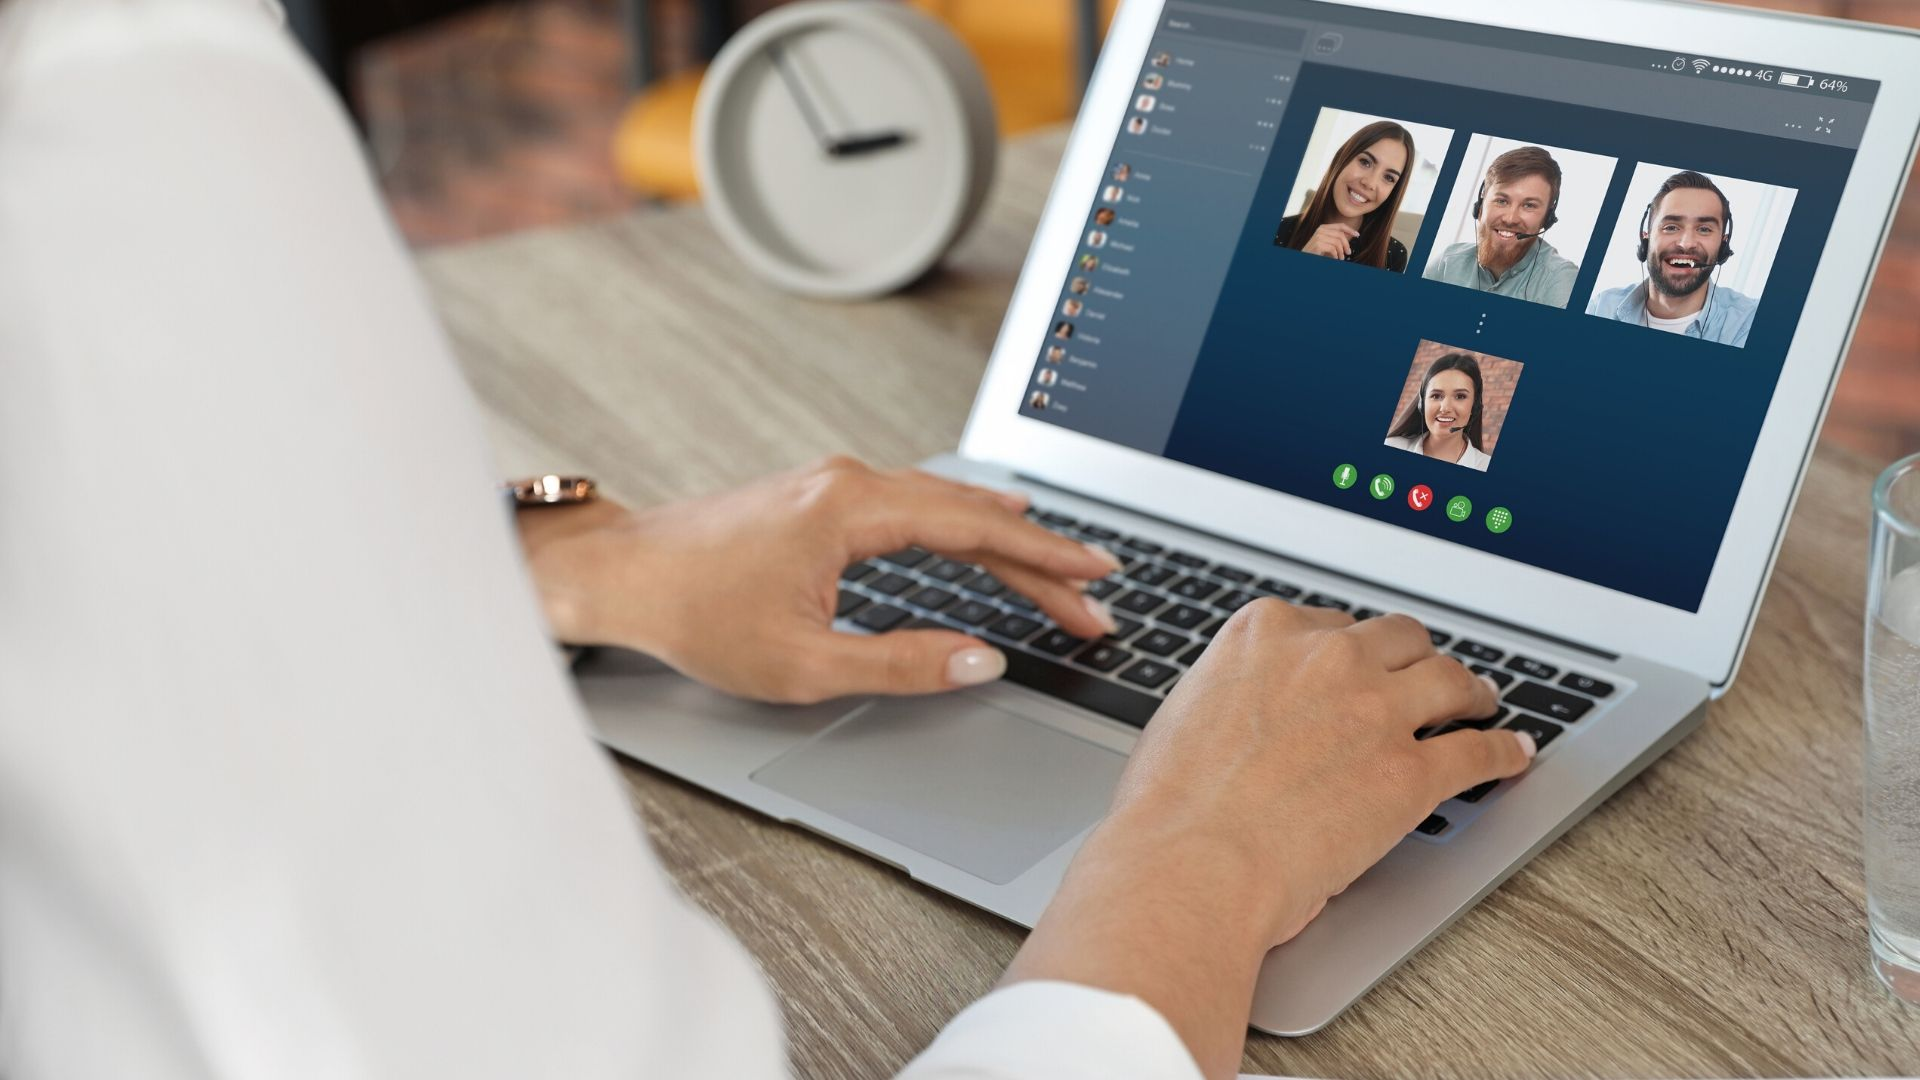 Tired of Long Video Calls and Emails? Try Asynchronous Video